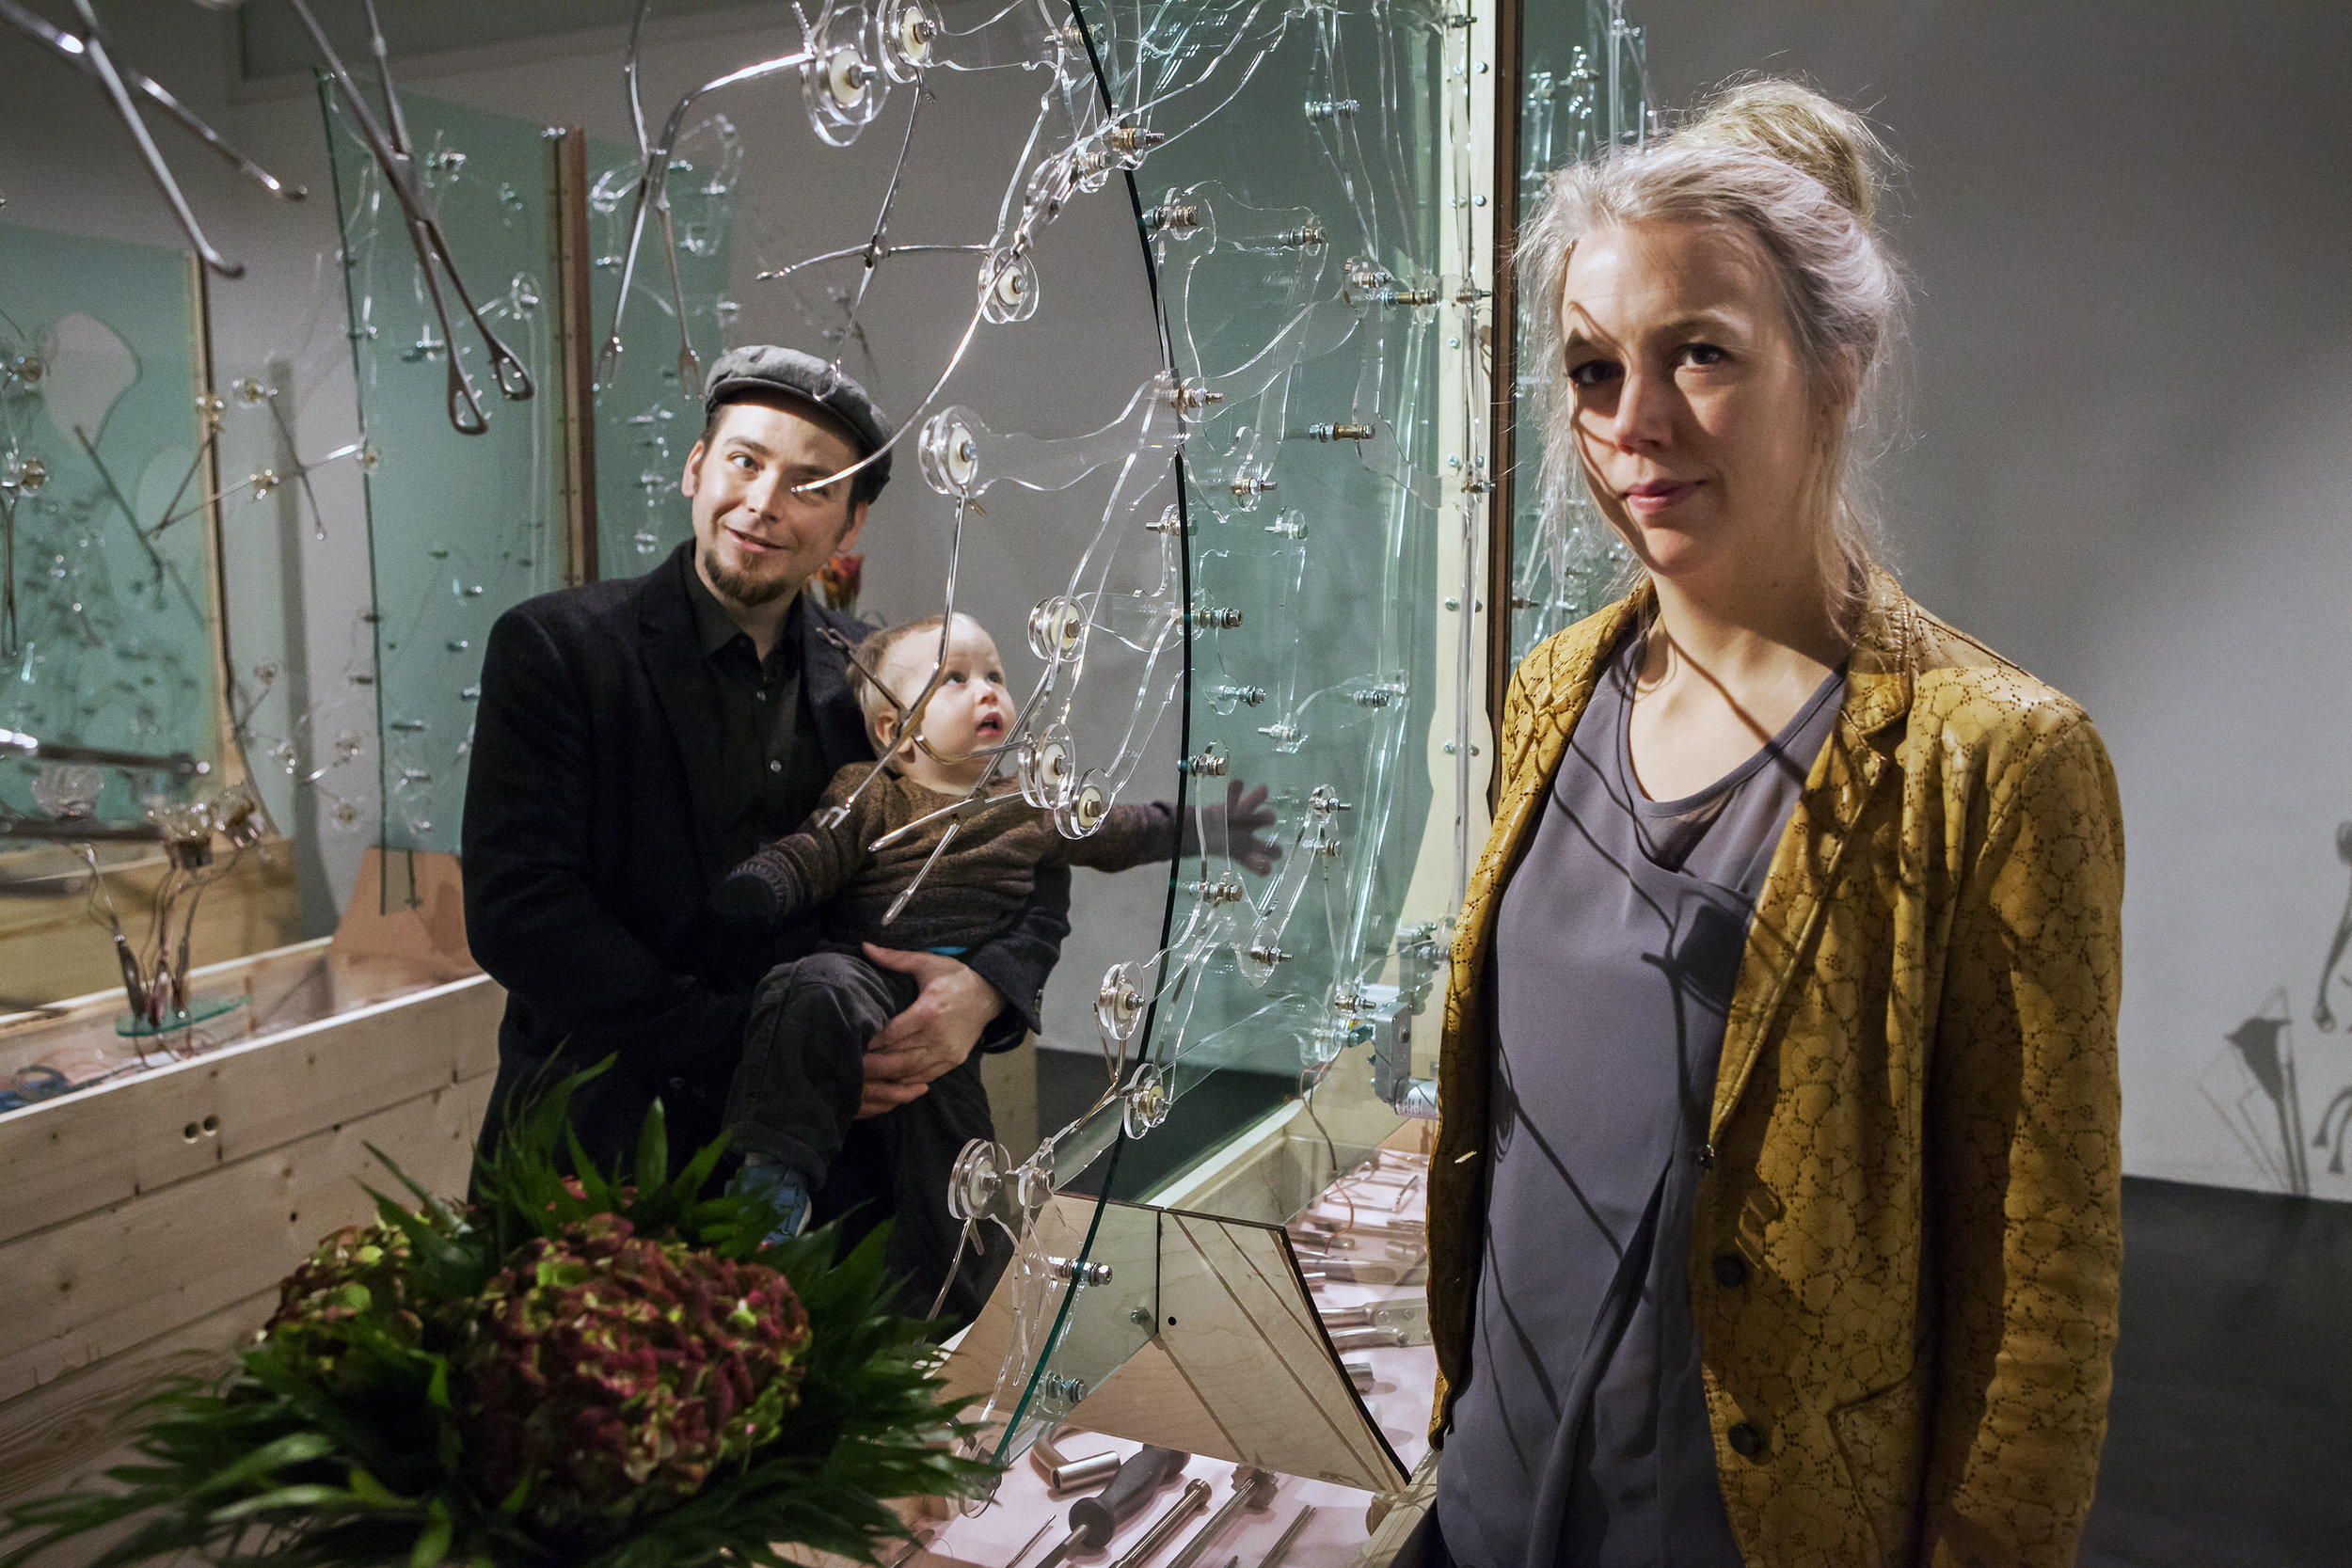 Pekka and Teija Isorättyä with their son, Iisakki, standing inside Nature Morte installation at Kiasma Museum of Contemporary Art in 2017. Photo by Petri Virtanen.